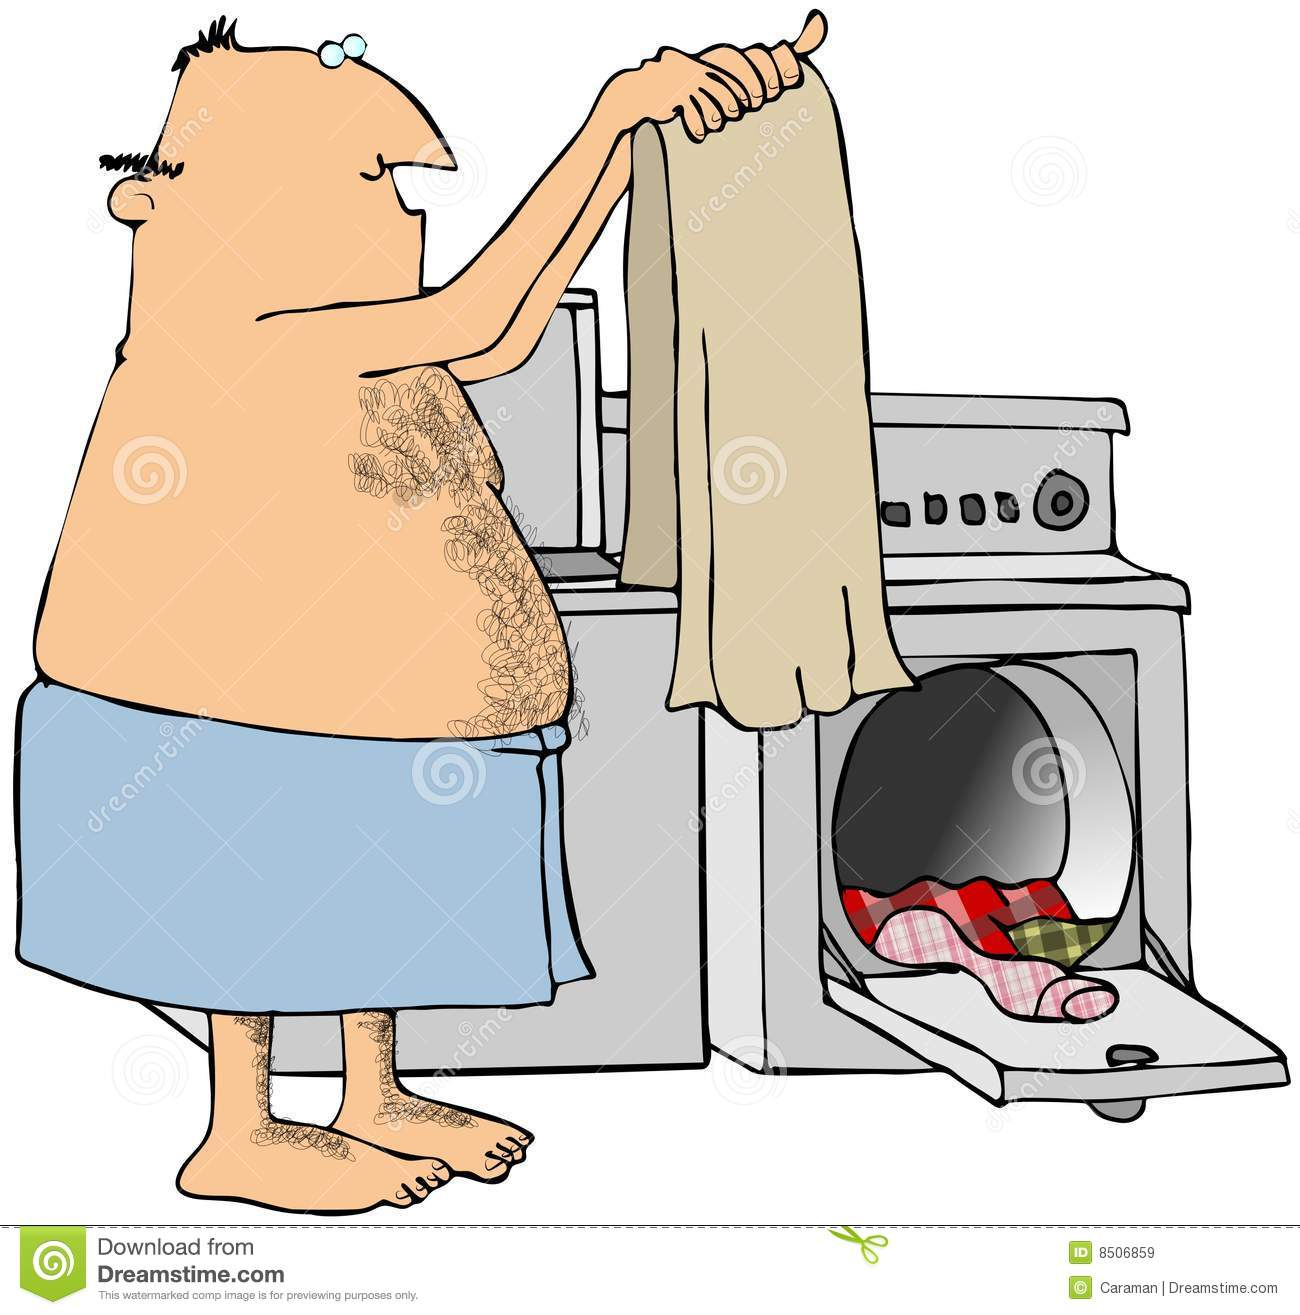 clothes shrunk in dryer how to fix